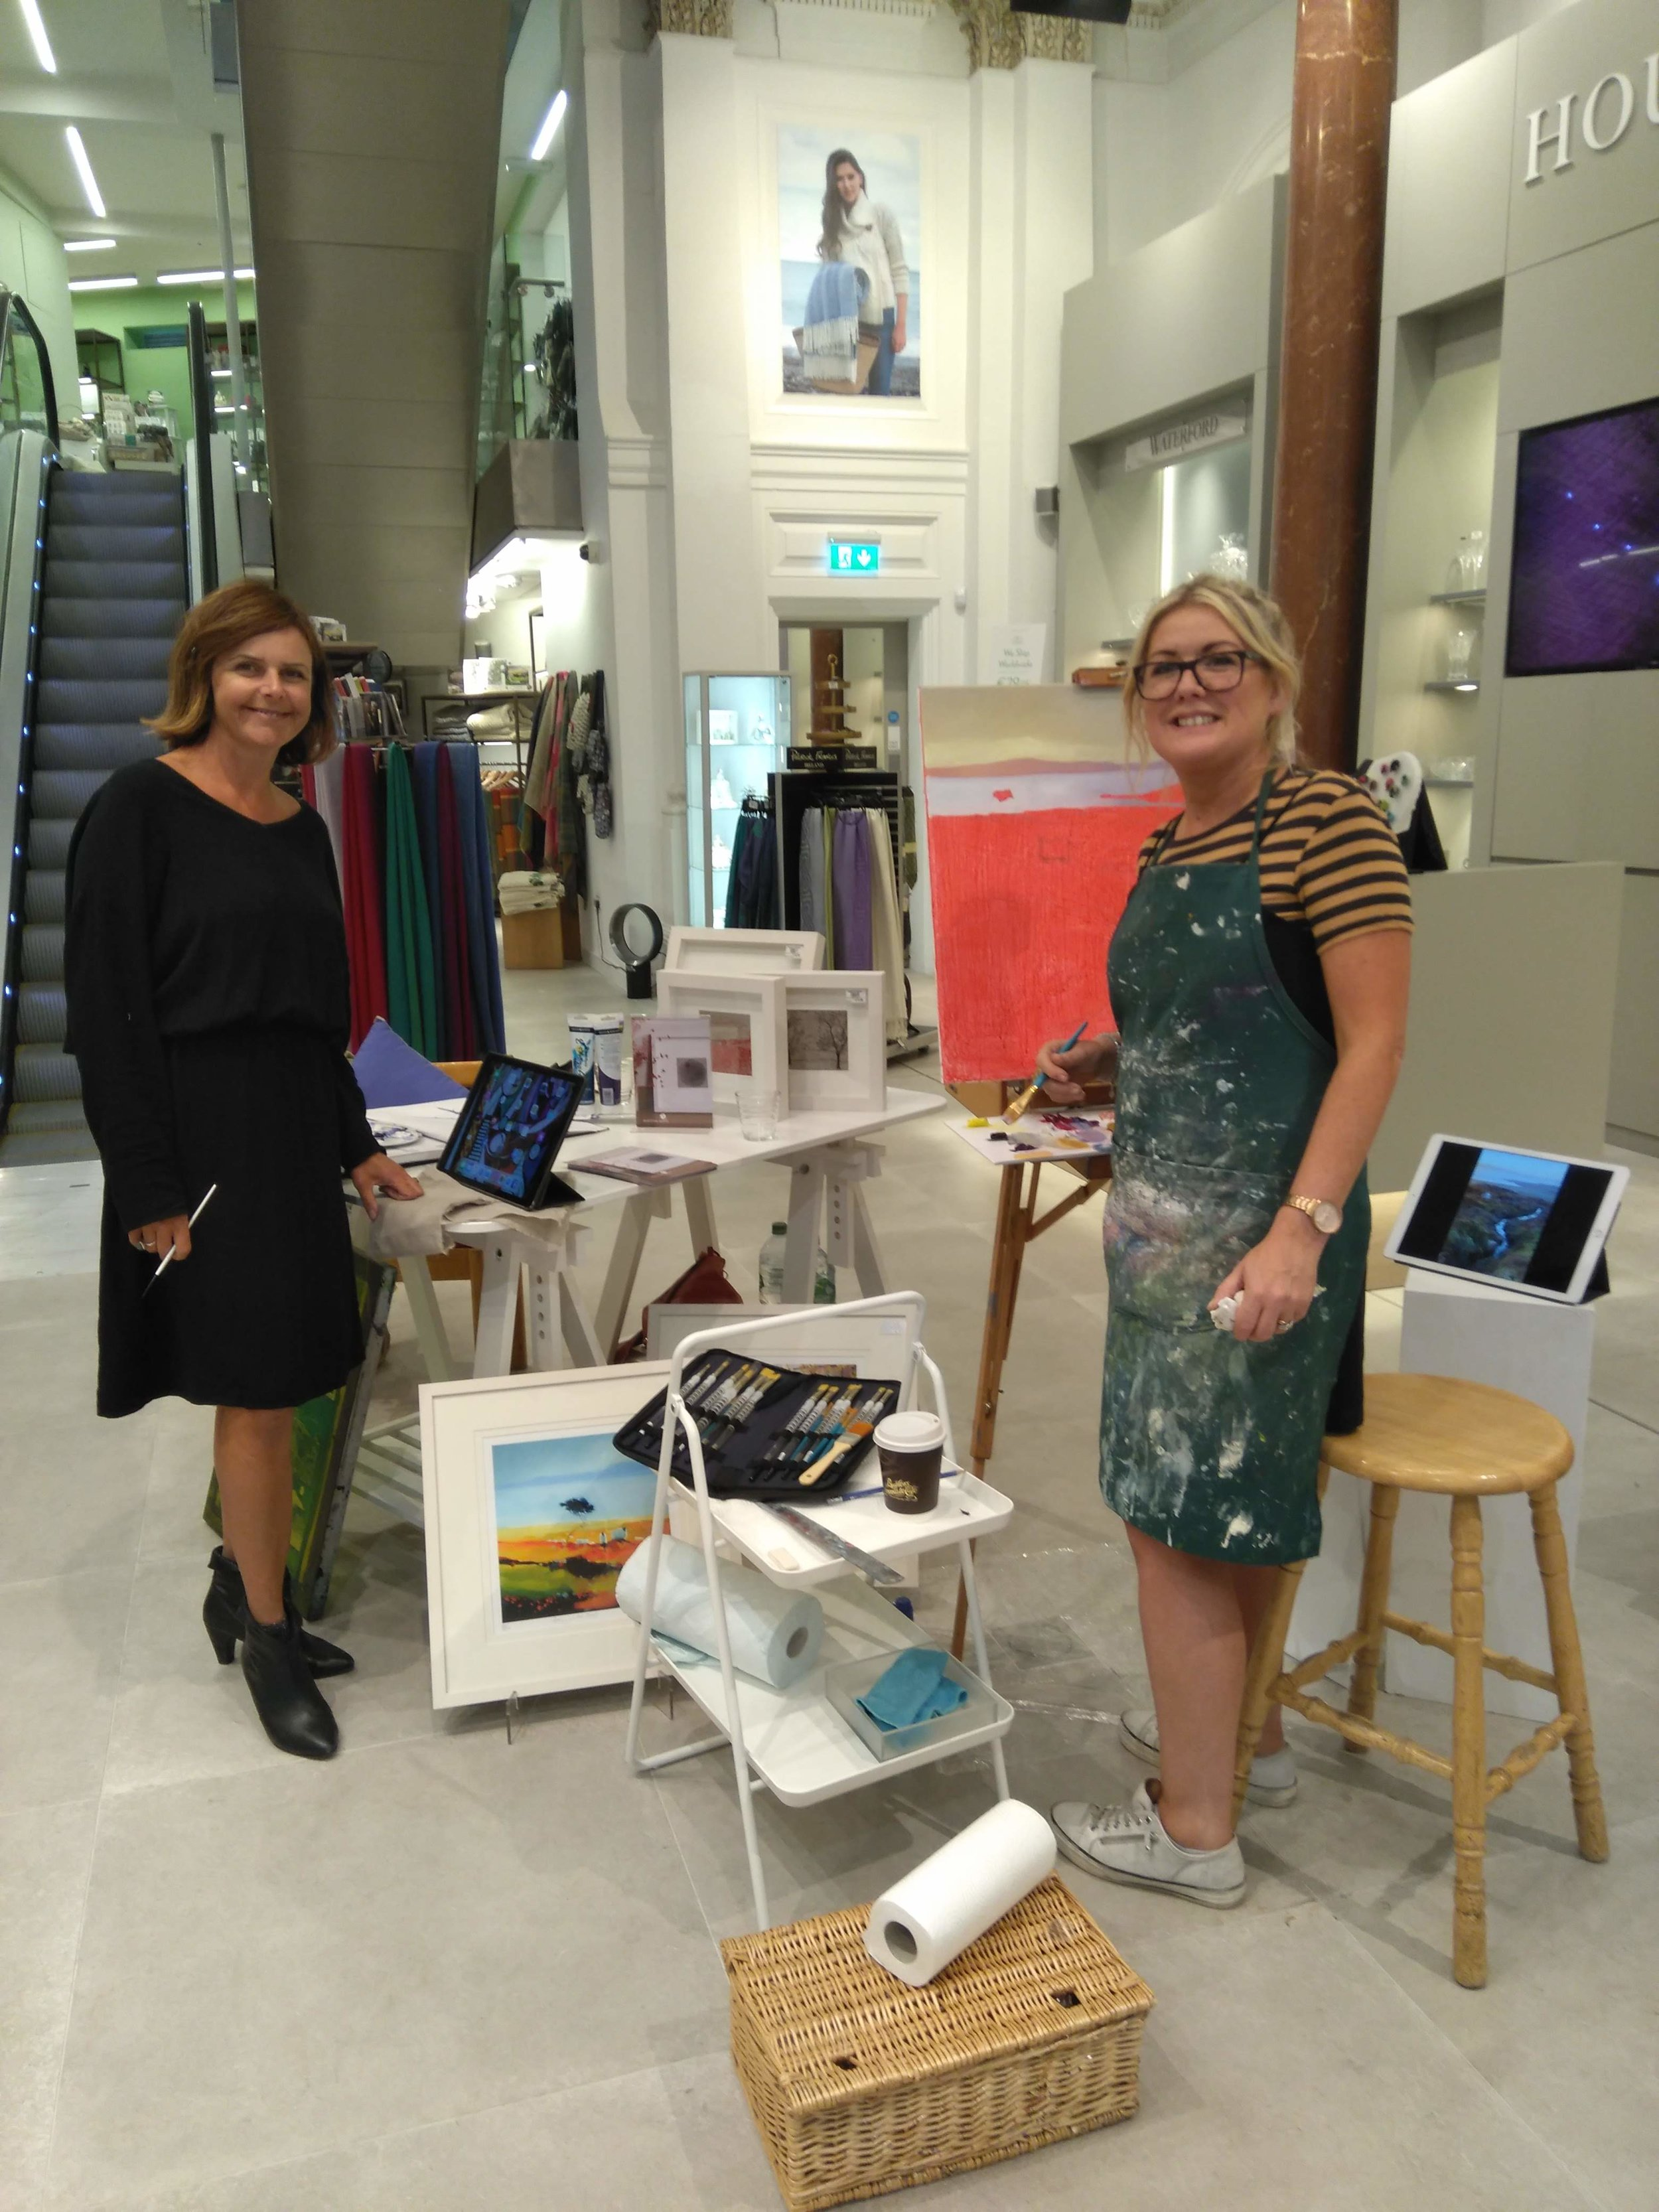 With fellow artists on the day, Martina Scott and Sharon McDaid